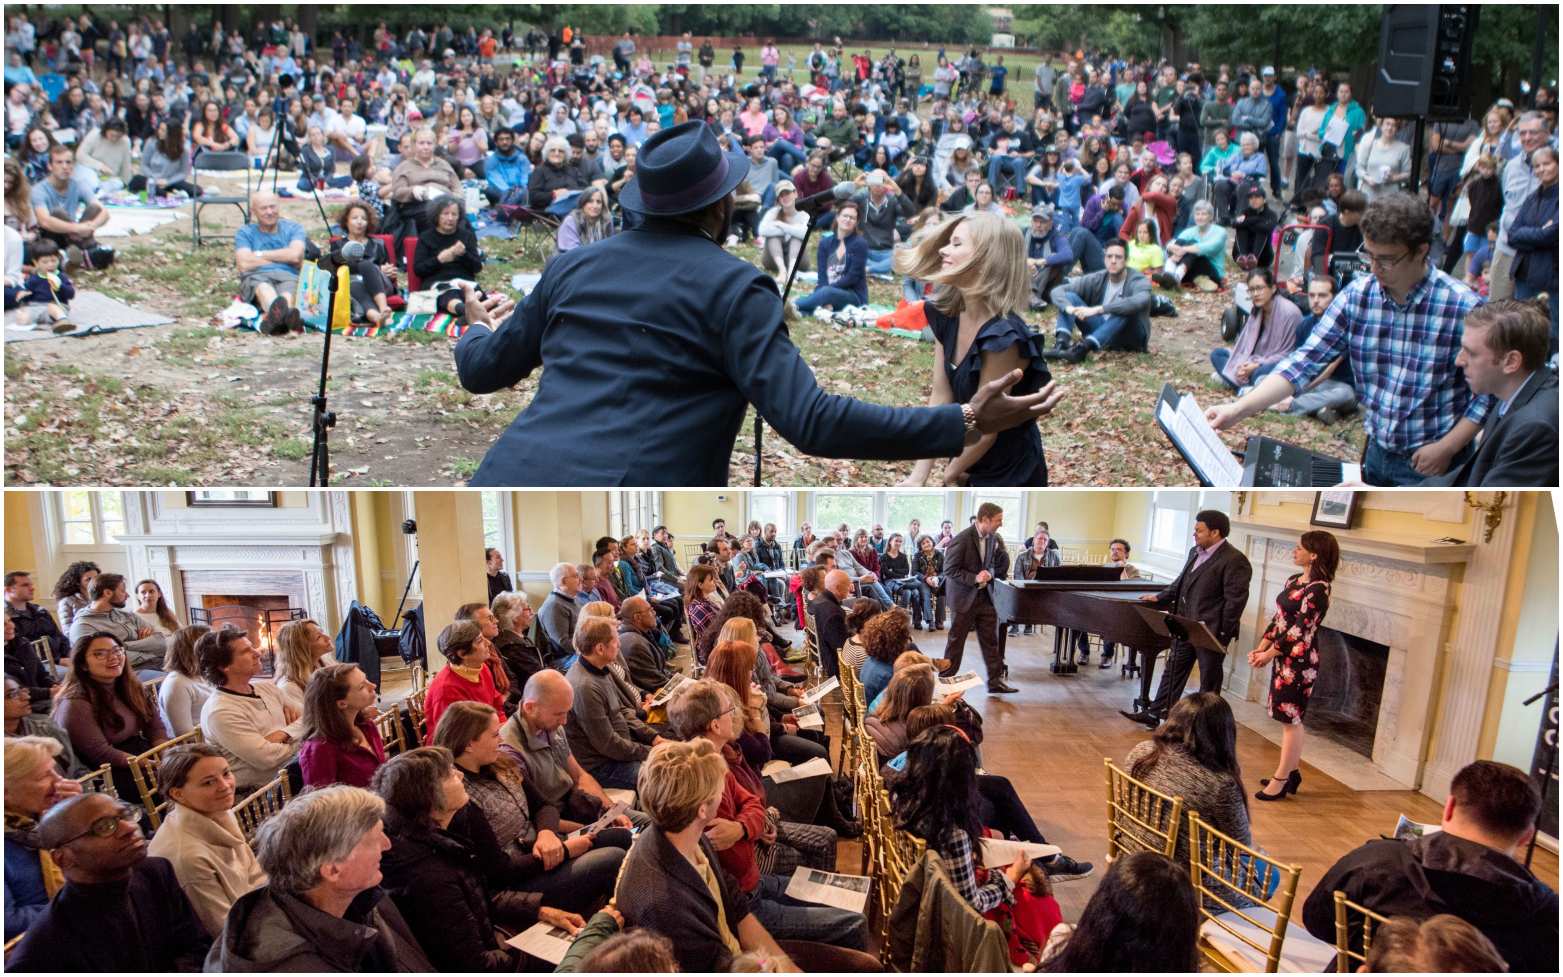 Top: Norman Garrett and Amy Owens sing for a crowd of over 500 in October 2017  Bottom: Joshua Blue and Maria Valdes sing for a relocated crowd (due to weather) of over 200 in October 2018 — rain or shine, the show must go on!